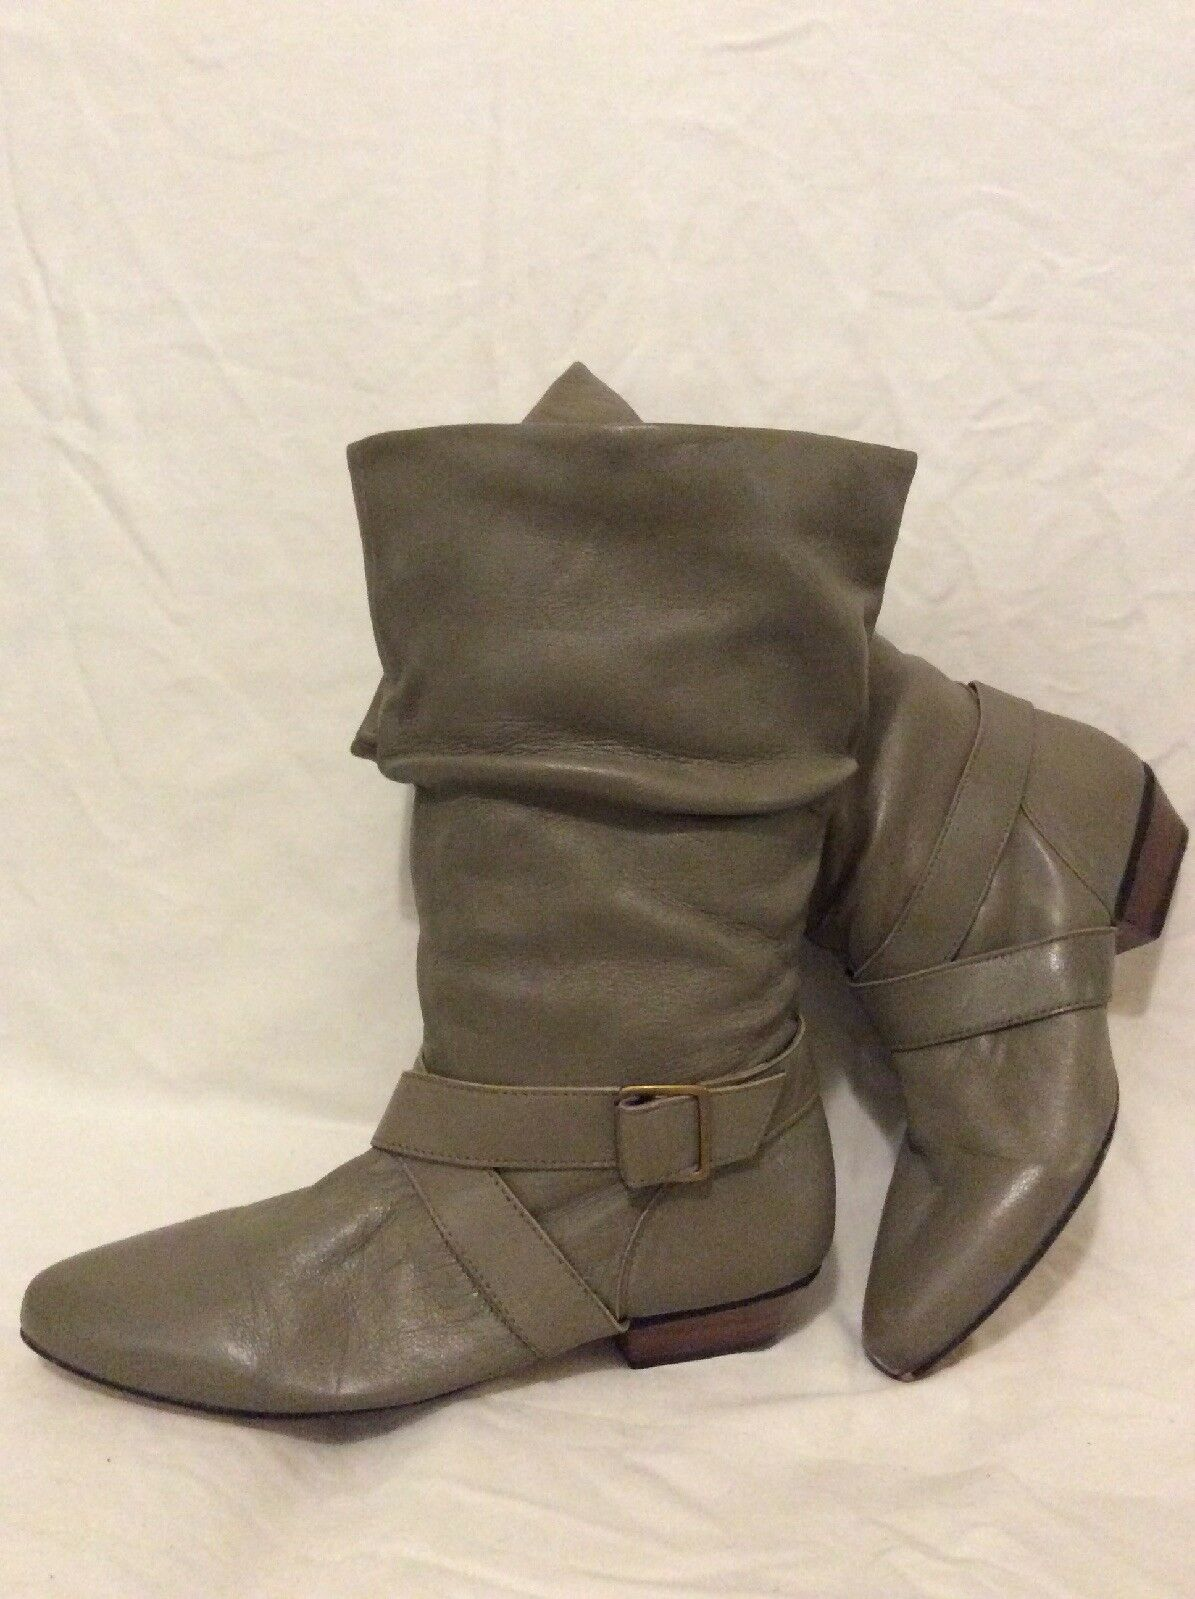 Bhs Grey Mid Calf Leather Boots Size 6